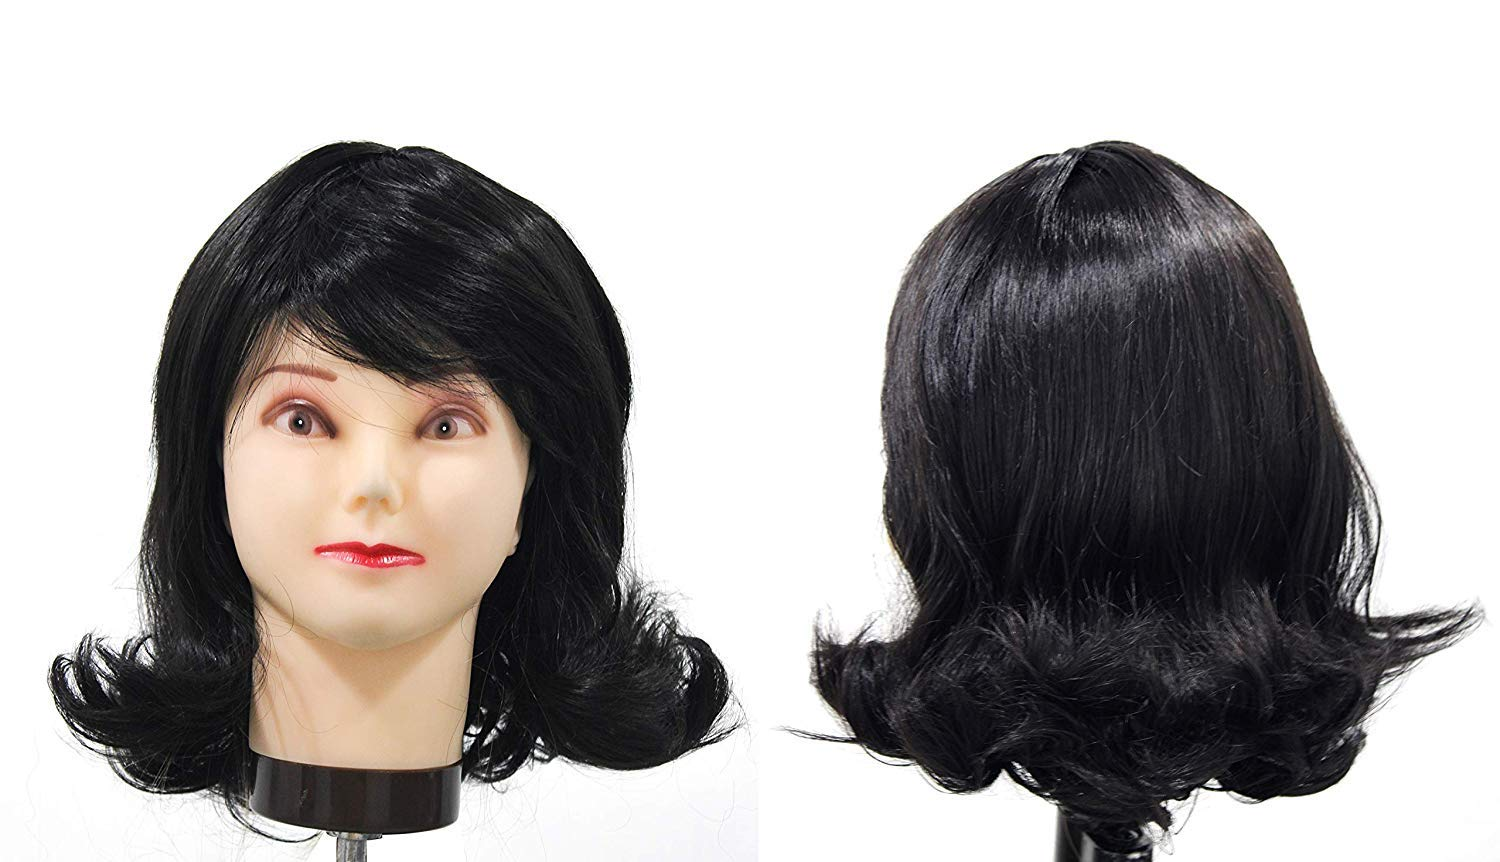 Glan Bob Wig For Women And Girls Short Hair Cut Wig For Wedding Party And Casual Use Black Pack Of 1 Amazon In Beauty